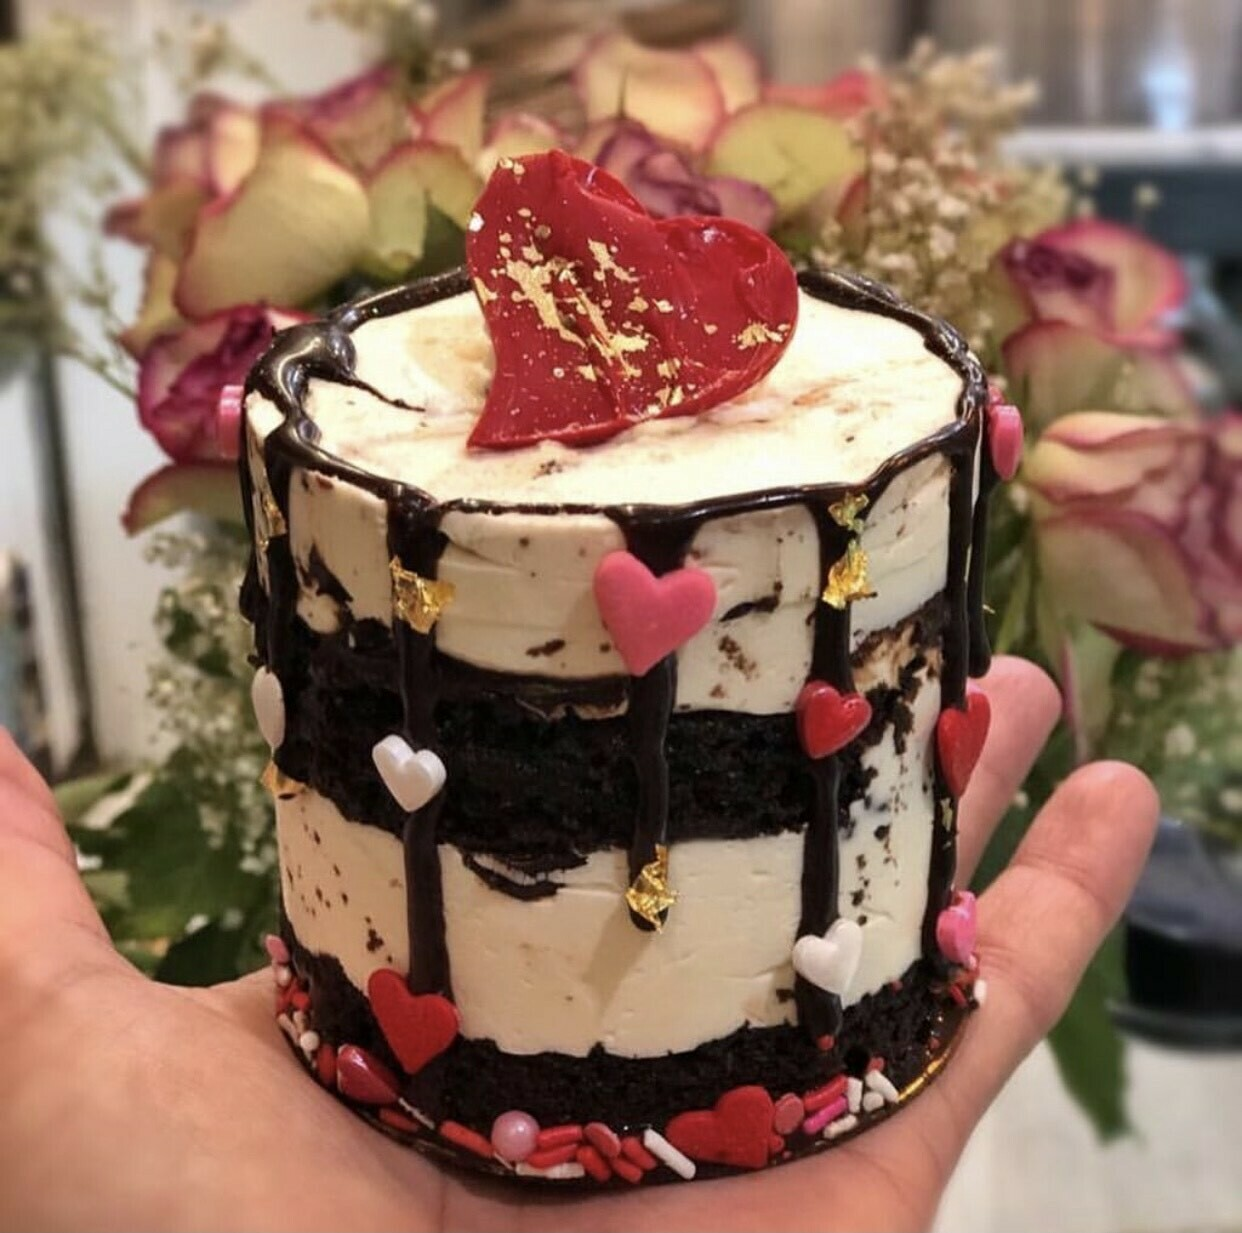 PRE-ORDER Valentine's Day White Chocolate Mousse Cake for 2/13 or 2/14